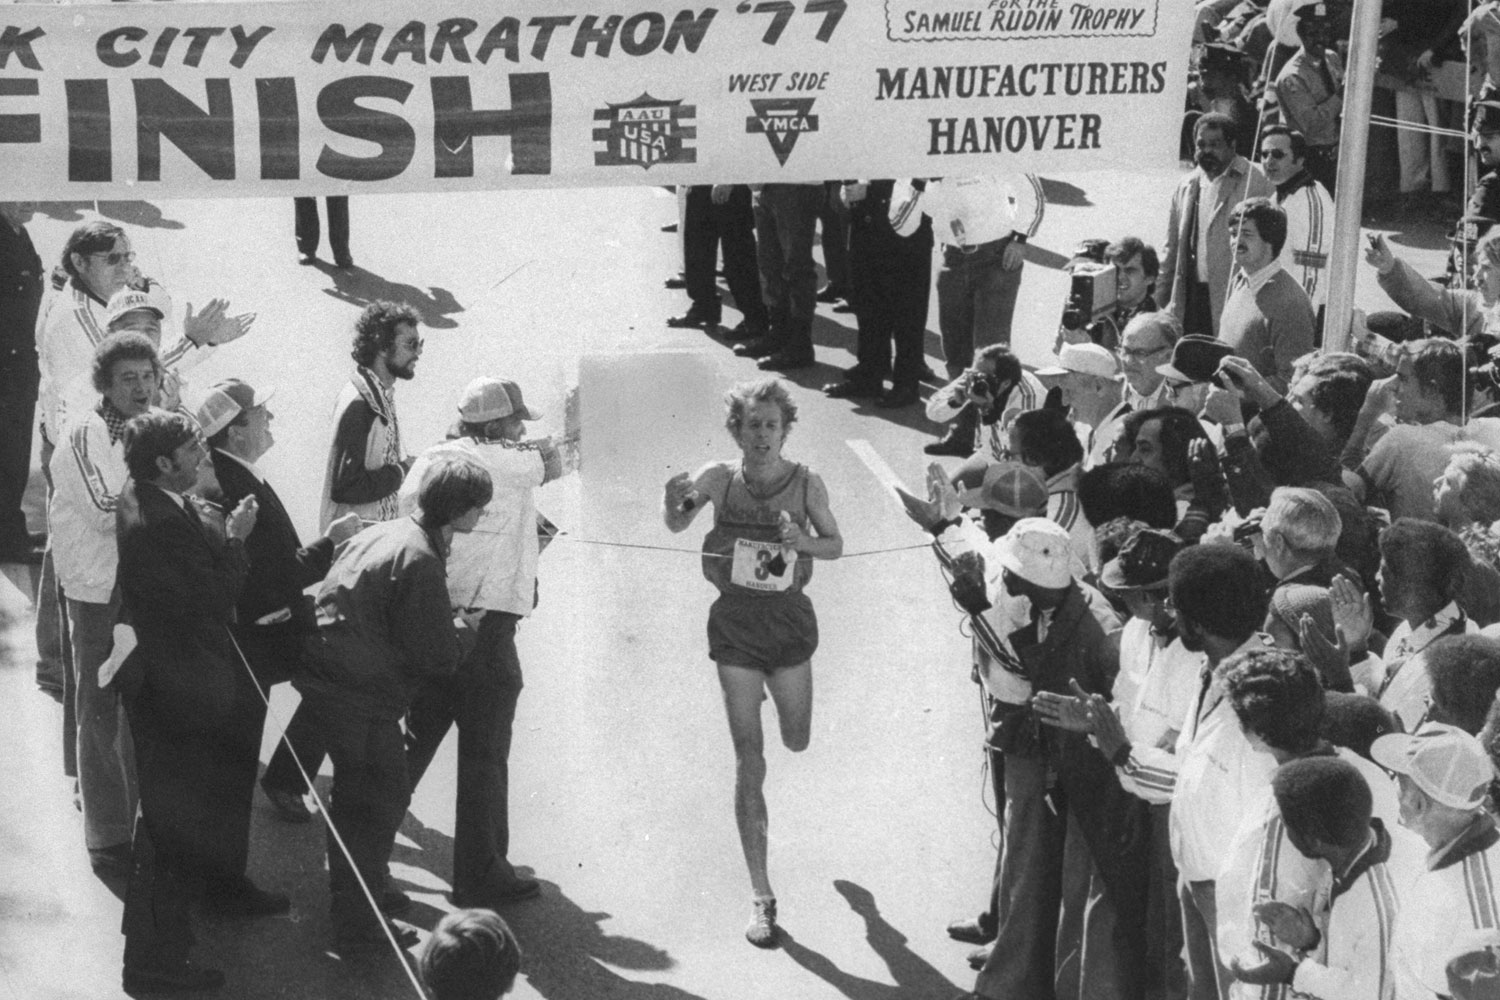 Marathon winner Bill Rodgers crosses the finish line in Central Park.